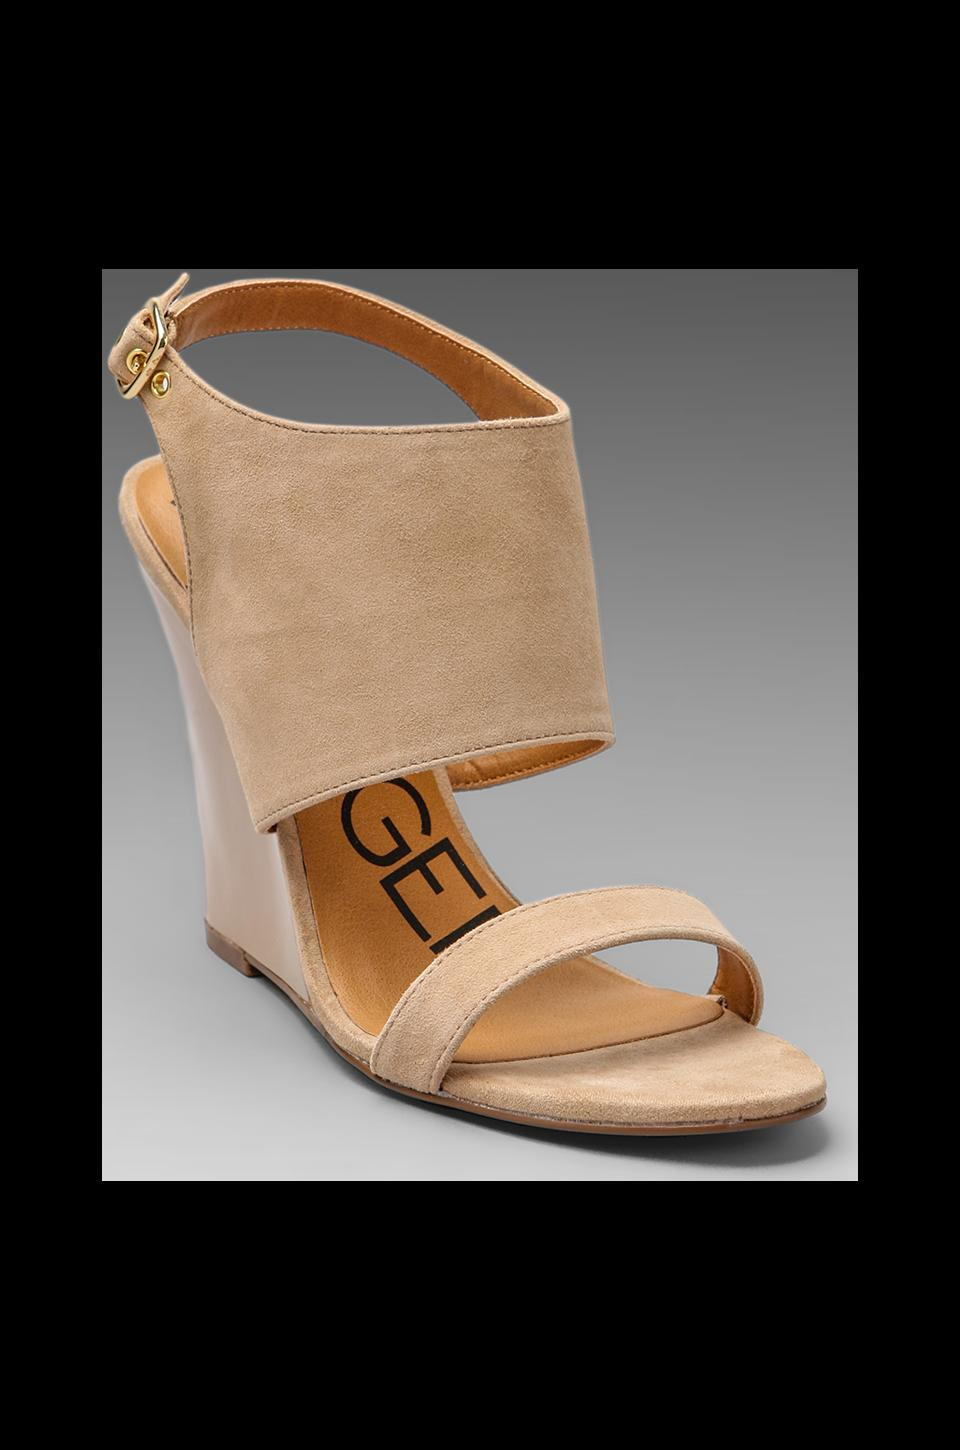 Kelsi Dagger Ellice Wedge Sandal in Beige